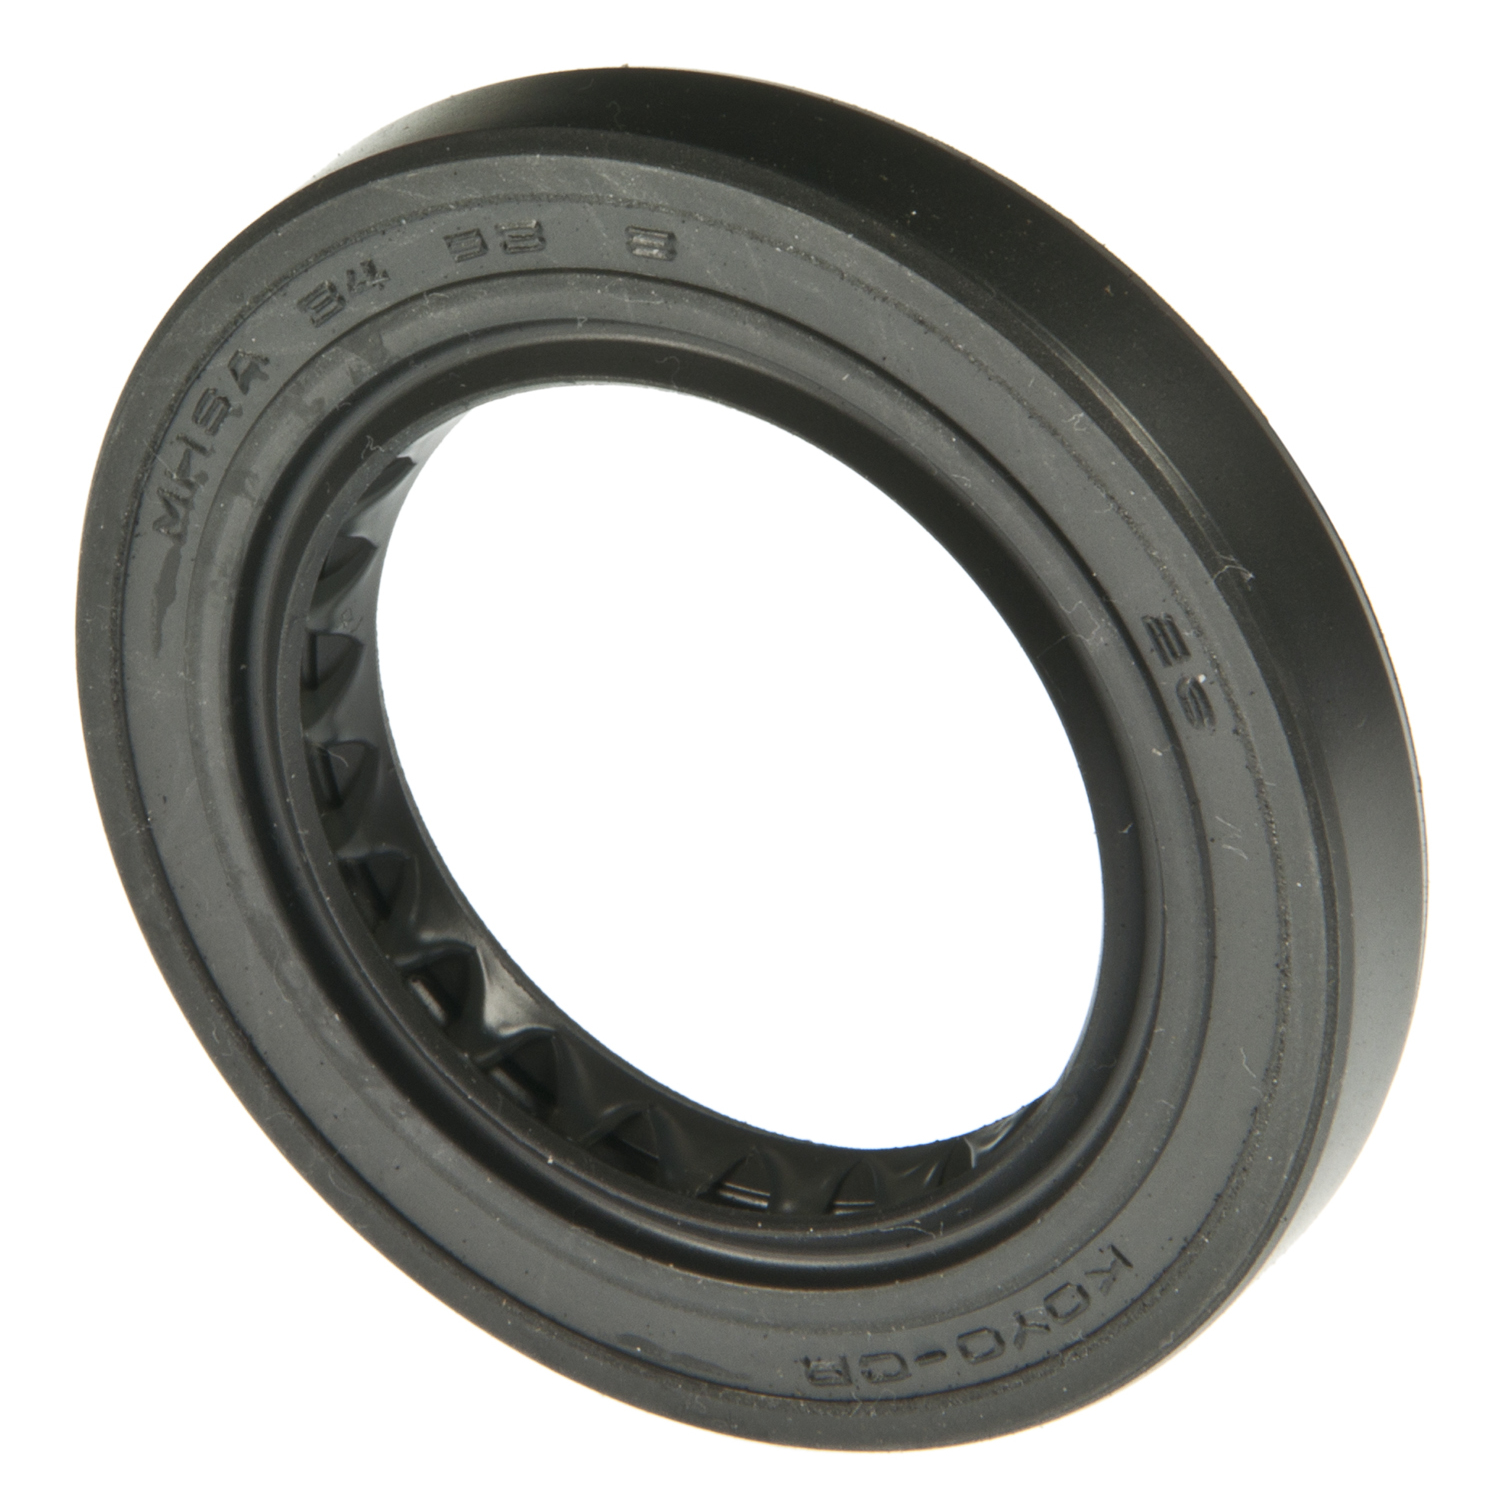 Transfer Case Mounting Adapter Seal